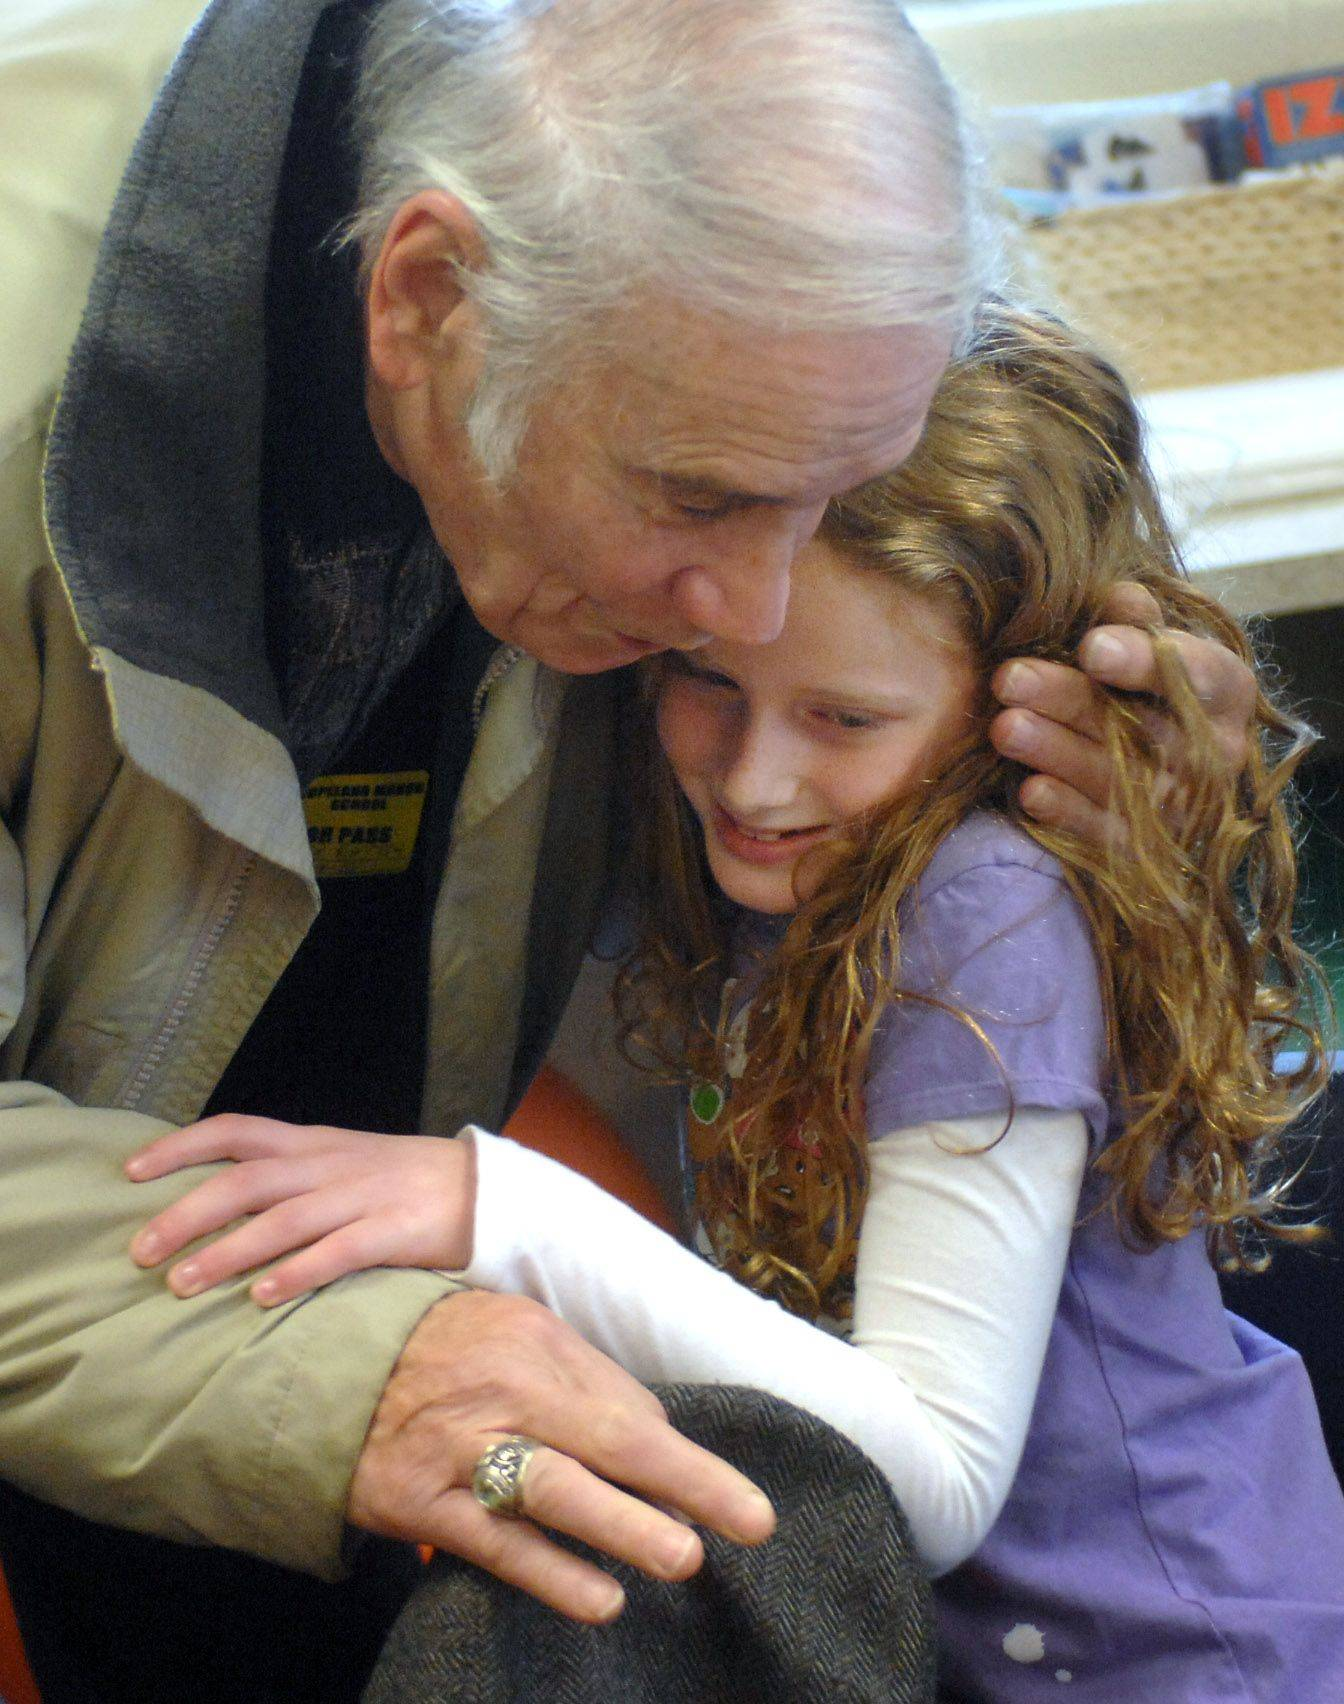 Third-grade students at Copeland Manor School in Libertyville held a Grandparents Day event Monday. Student Maeve Rattin gets a hug from her grandfather Tony Rattin of Libertyville. The event included an activity comparing school from when the grandparents were in school to now.